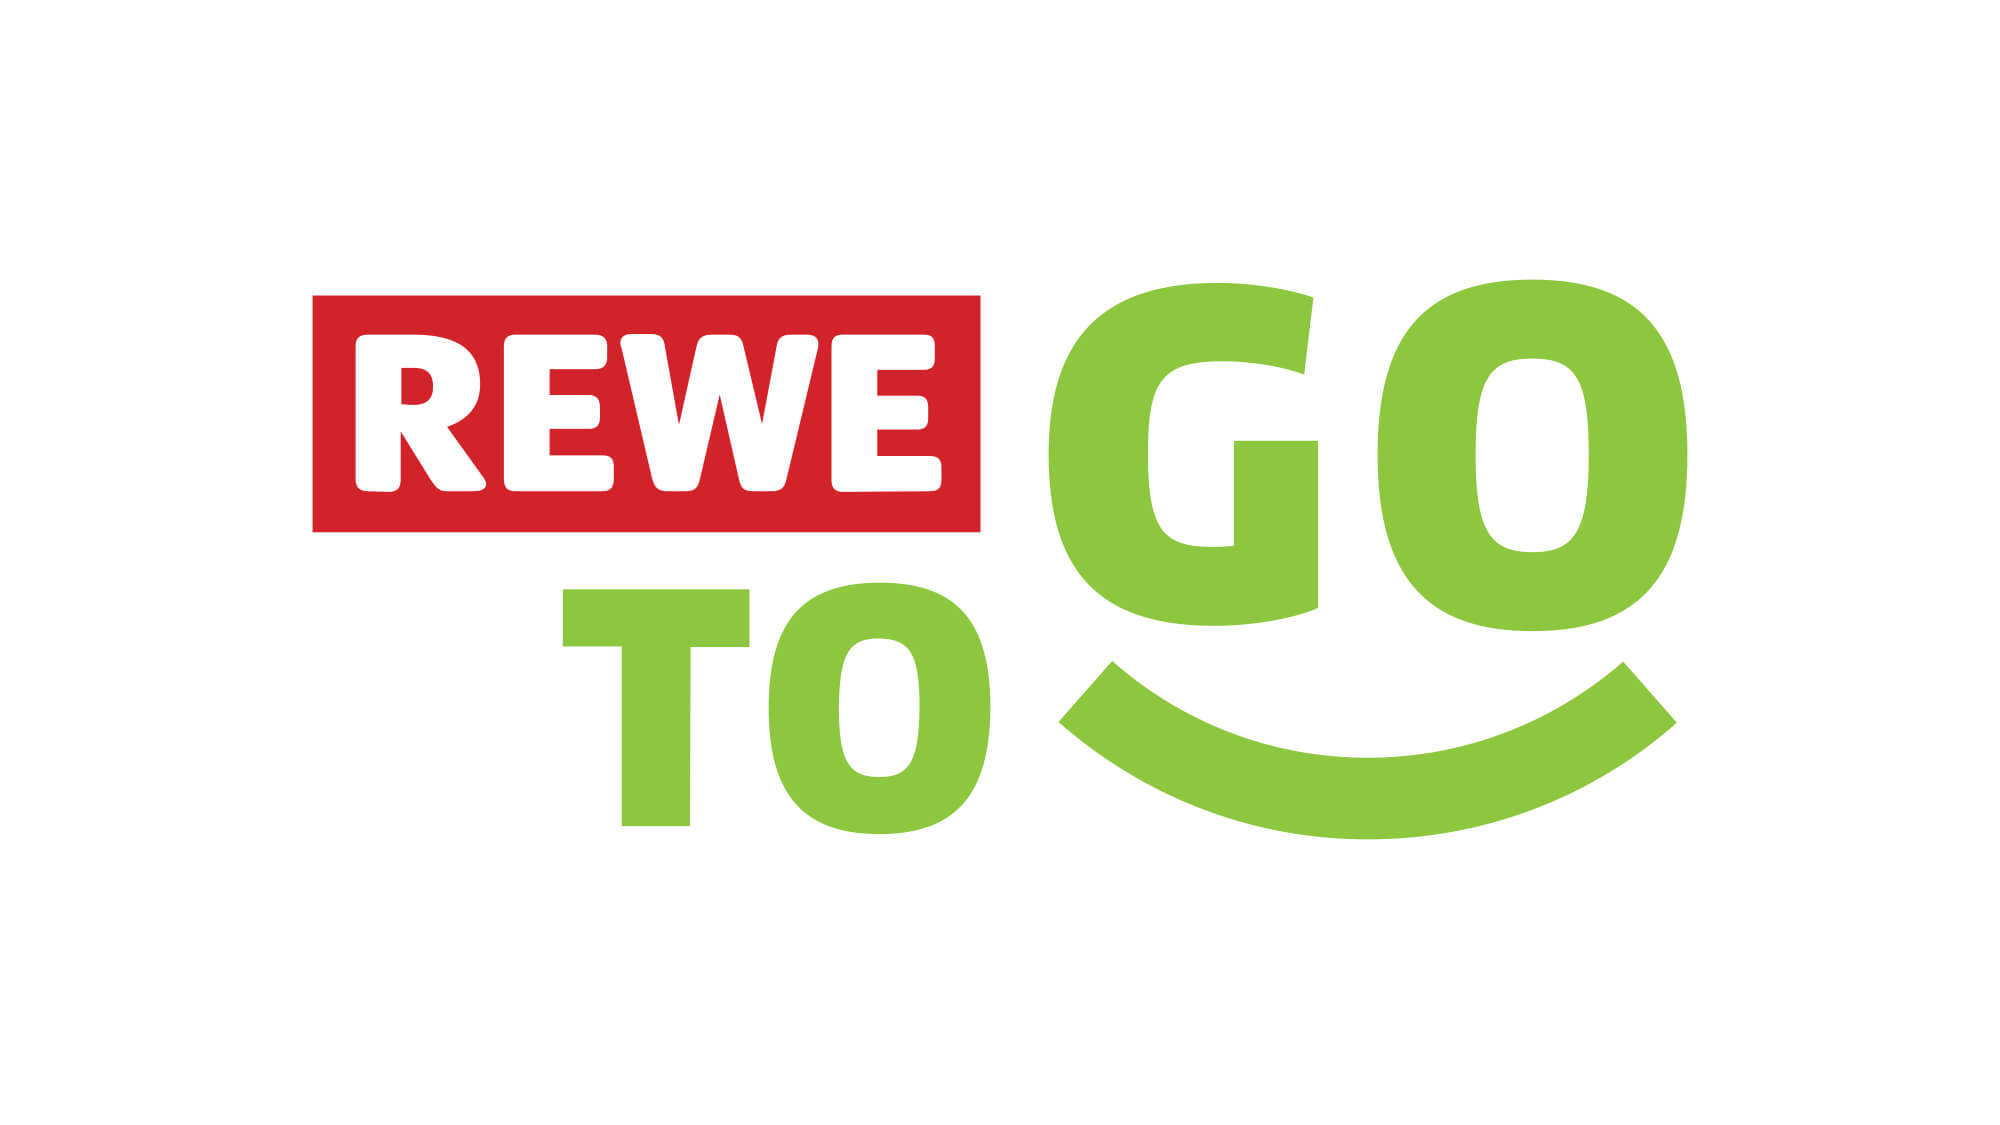 REWE To Go in Lingen - LNGN.de